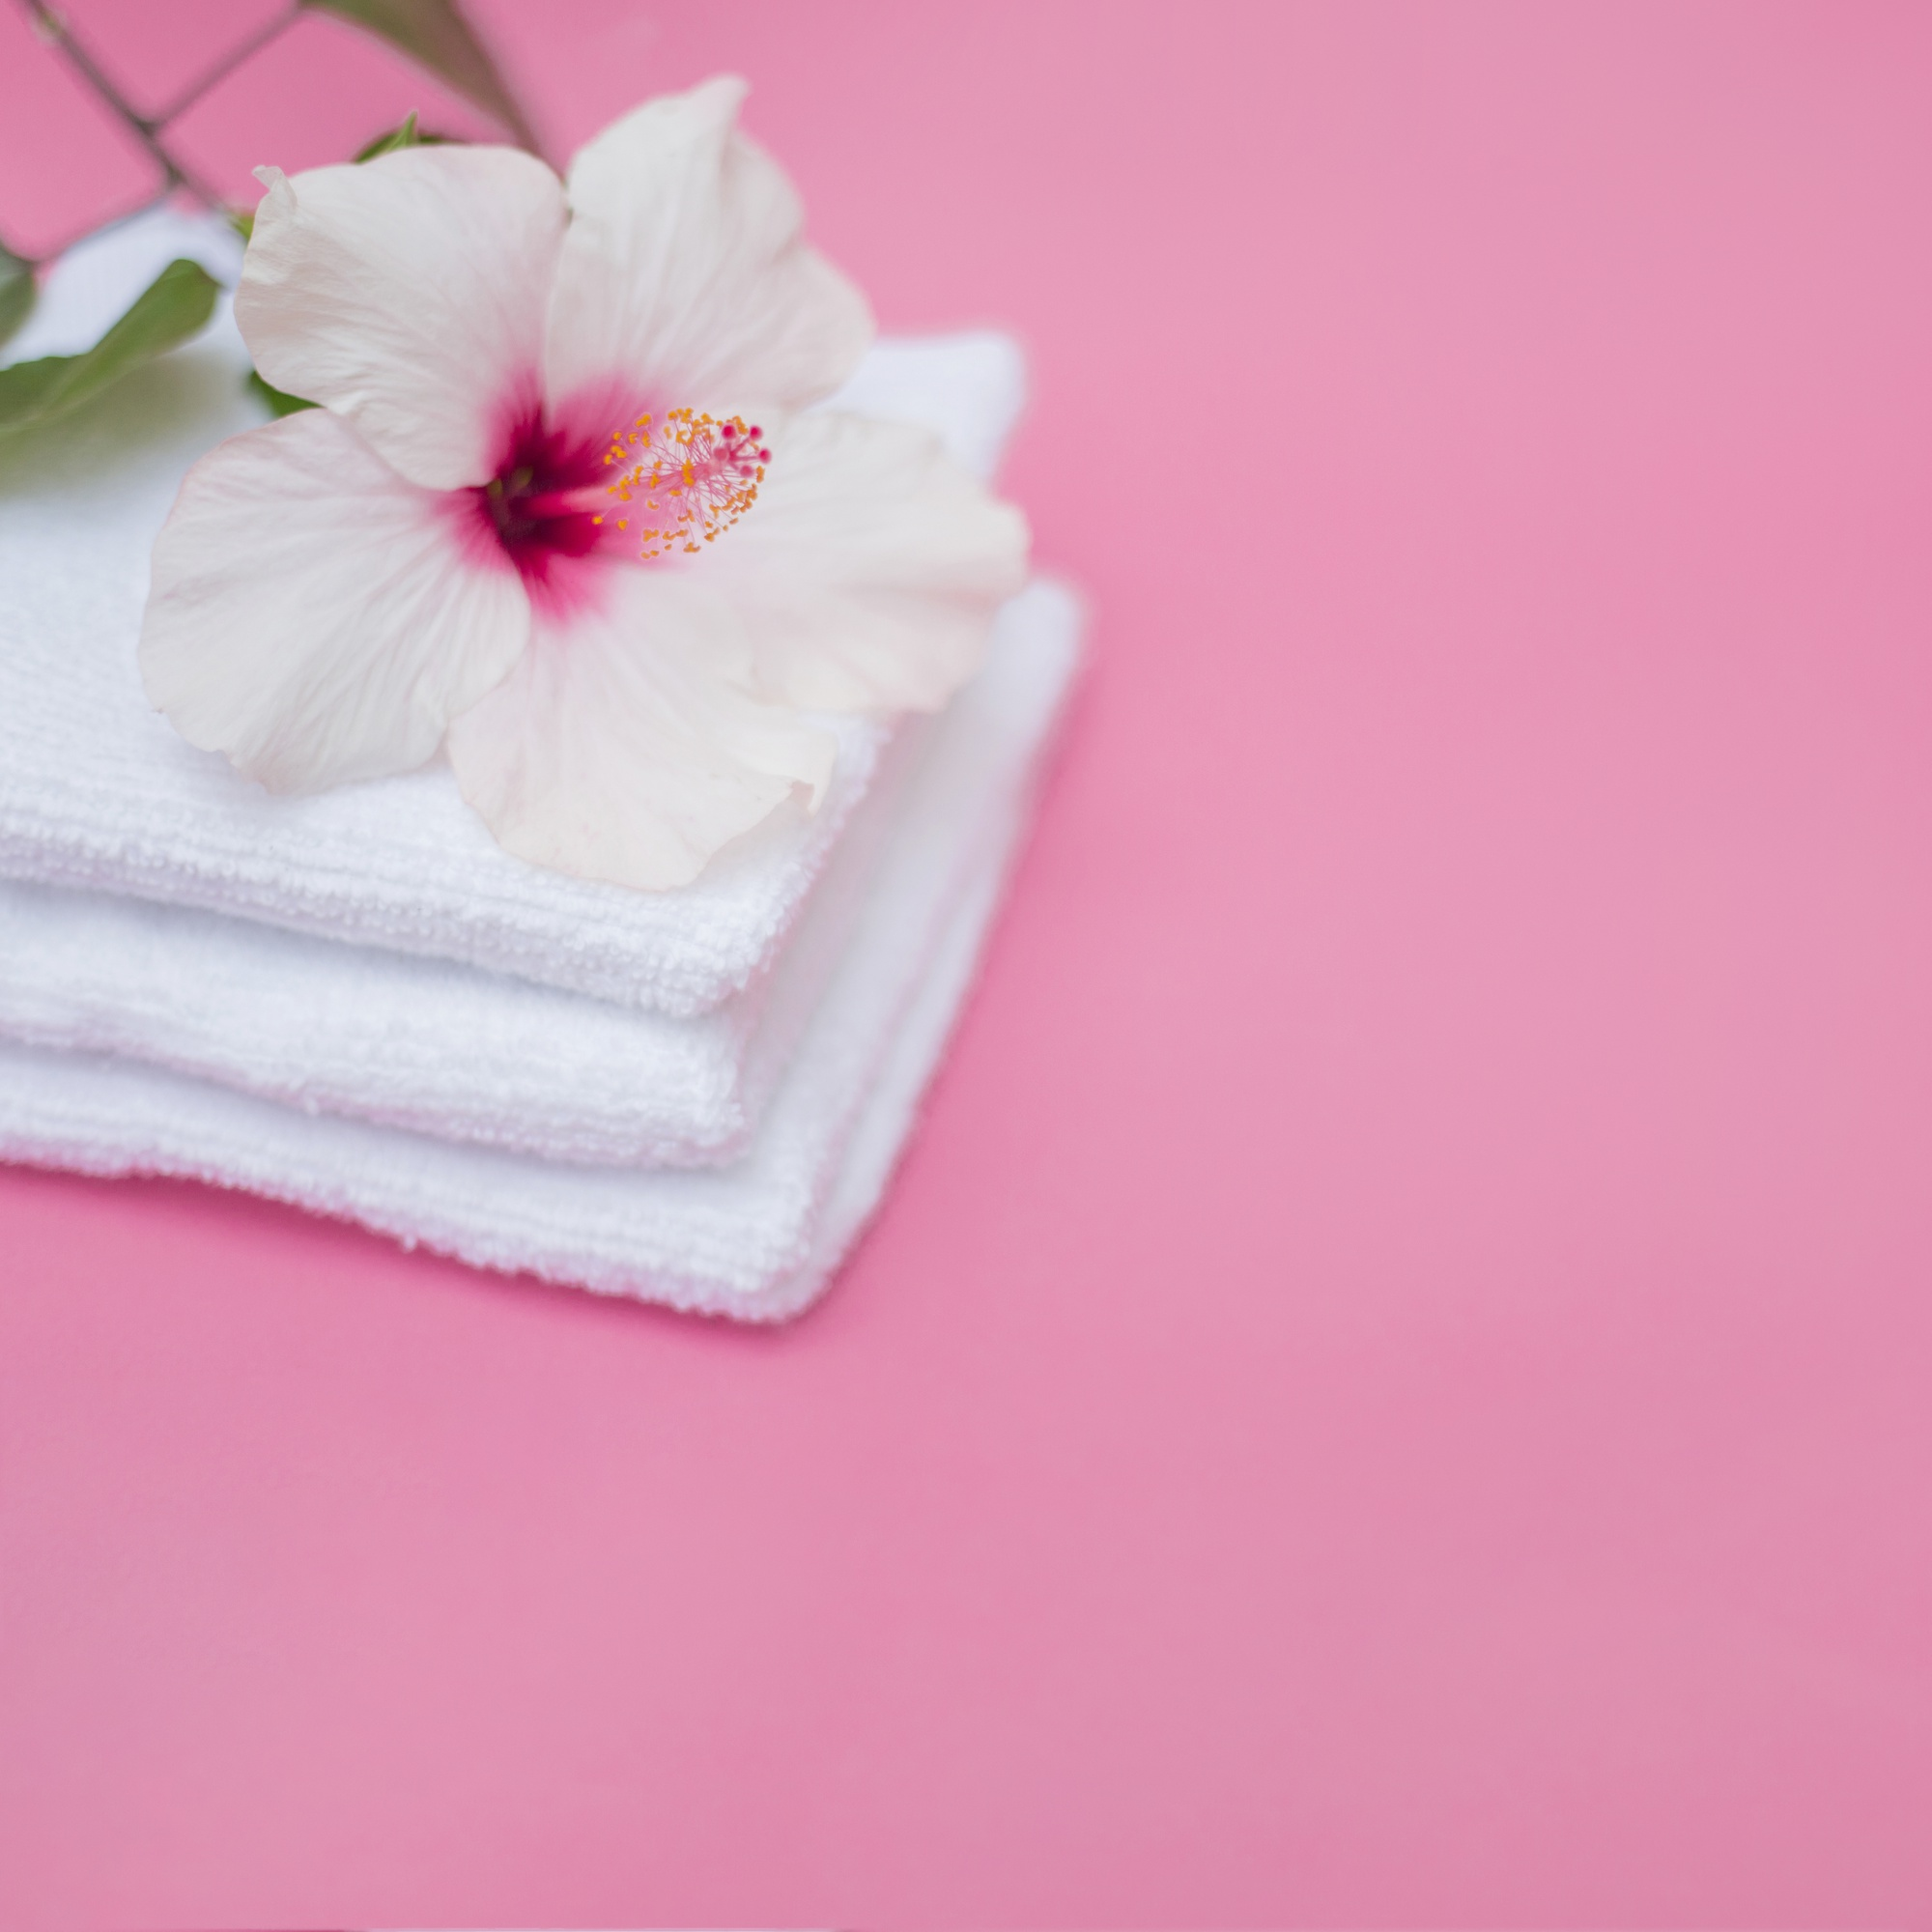 White hibiscus flower and towels on pink background